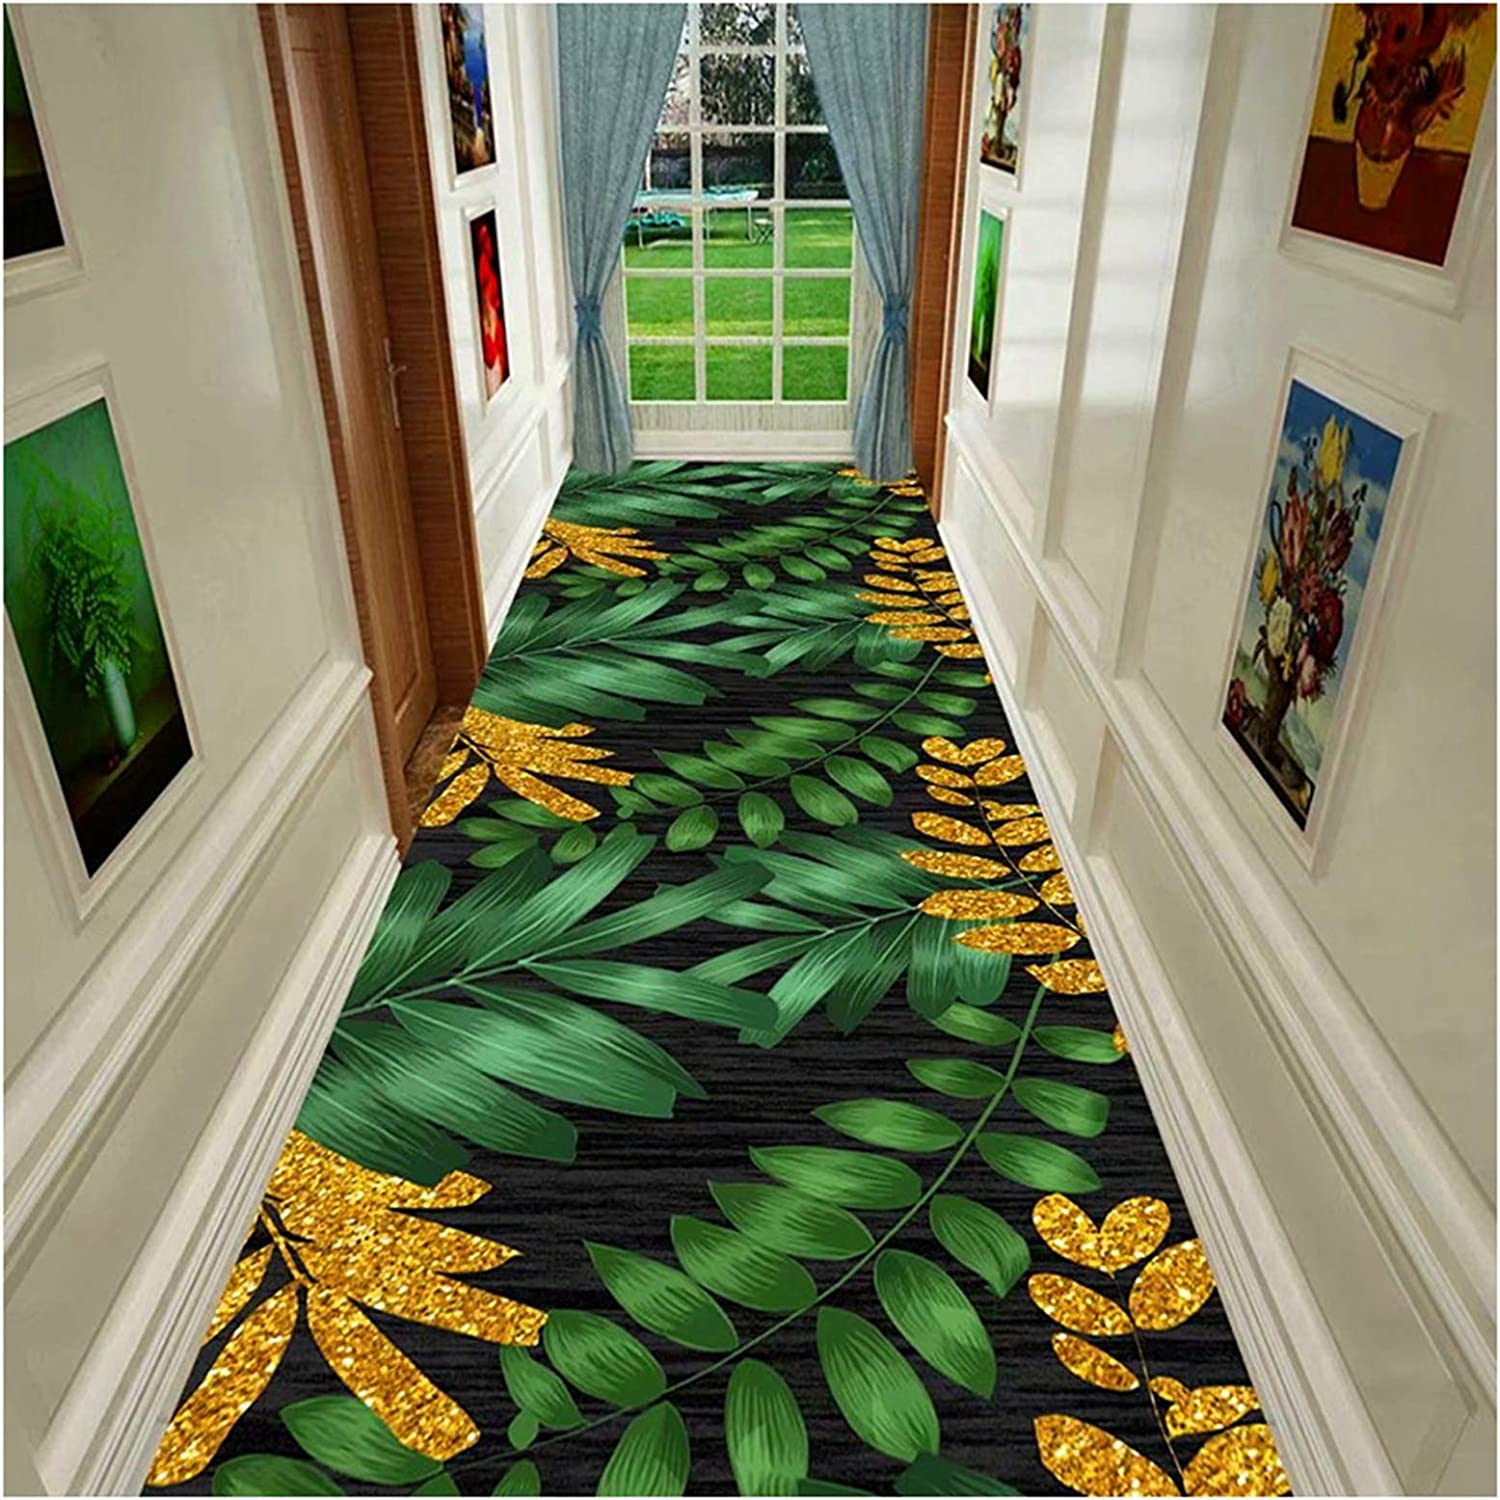 Runner Rug Hotel Home Hallway Rugs Bed C Washable Area Side Cash Opening large release sale special price